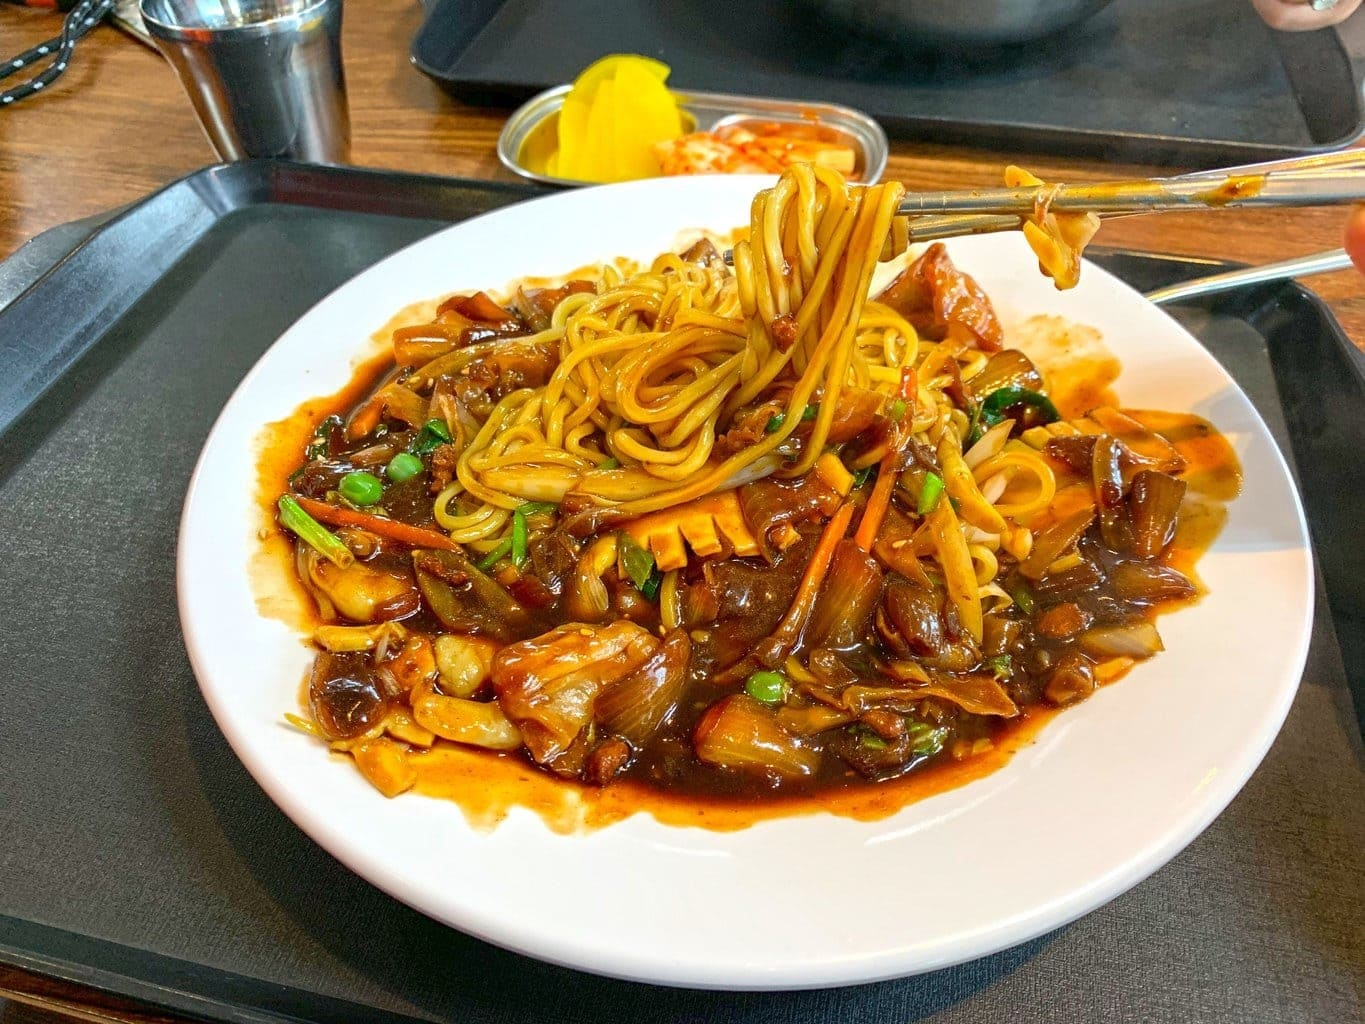 Famous jajangmyeon (black bean noodles) in Incheon Chinatown